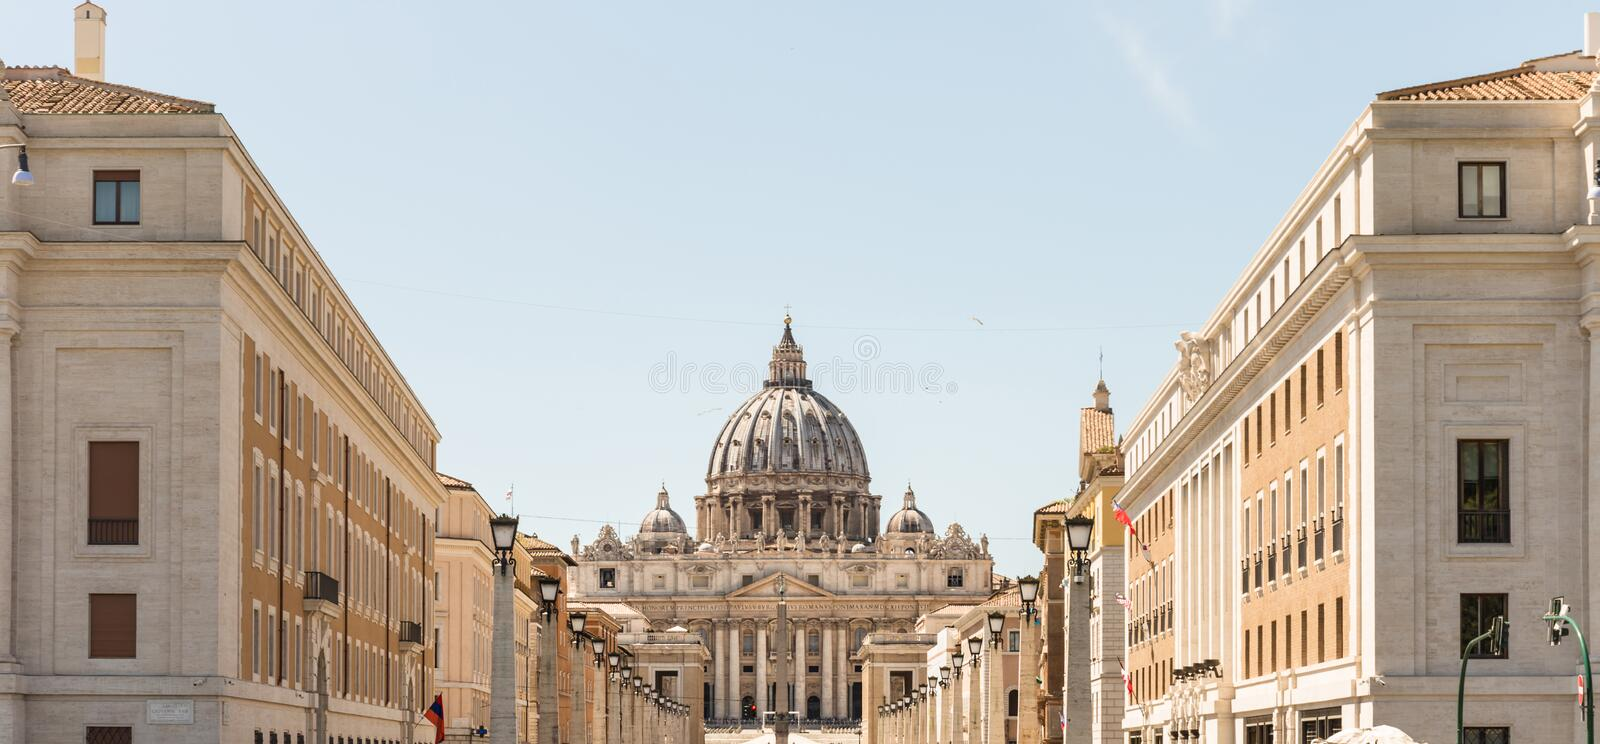 Saint Peter`s Basilica, main facade and dome. Vatican City. stock image